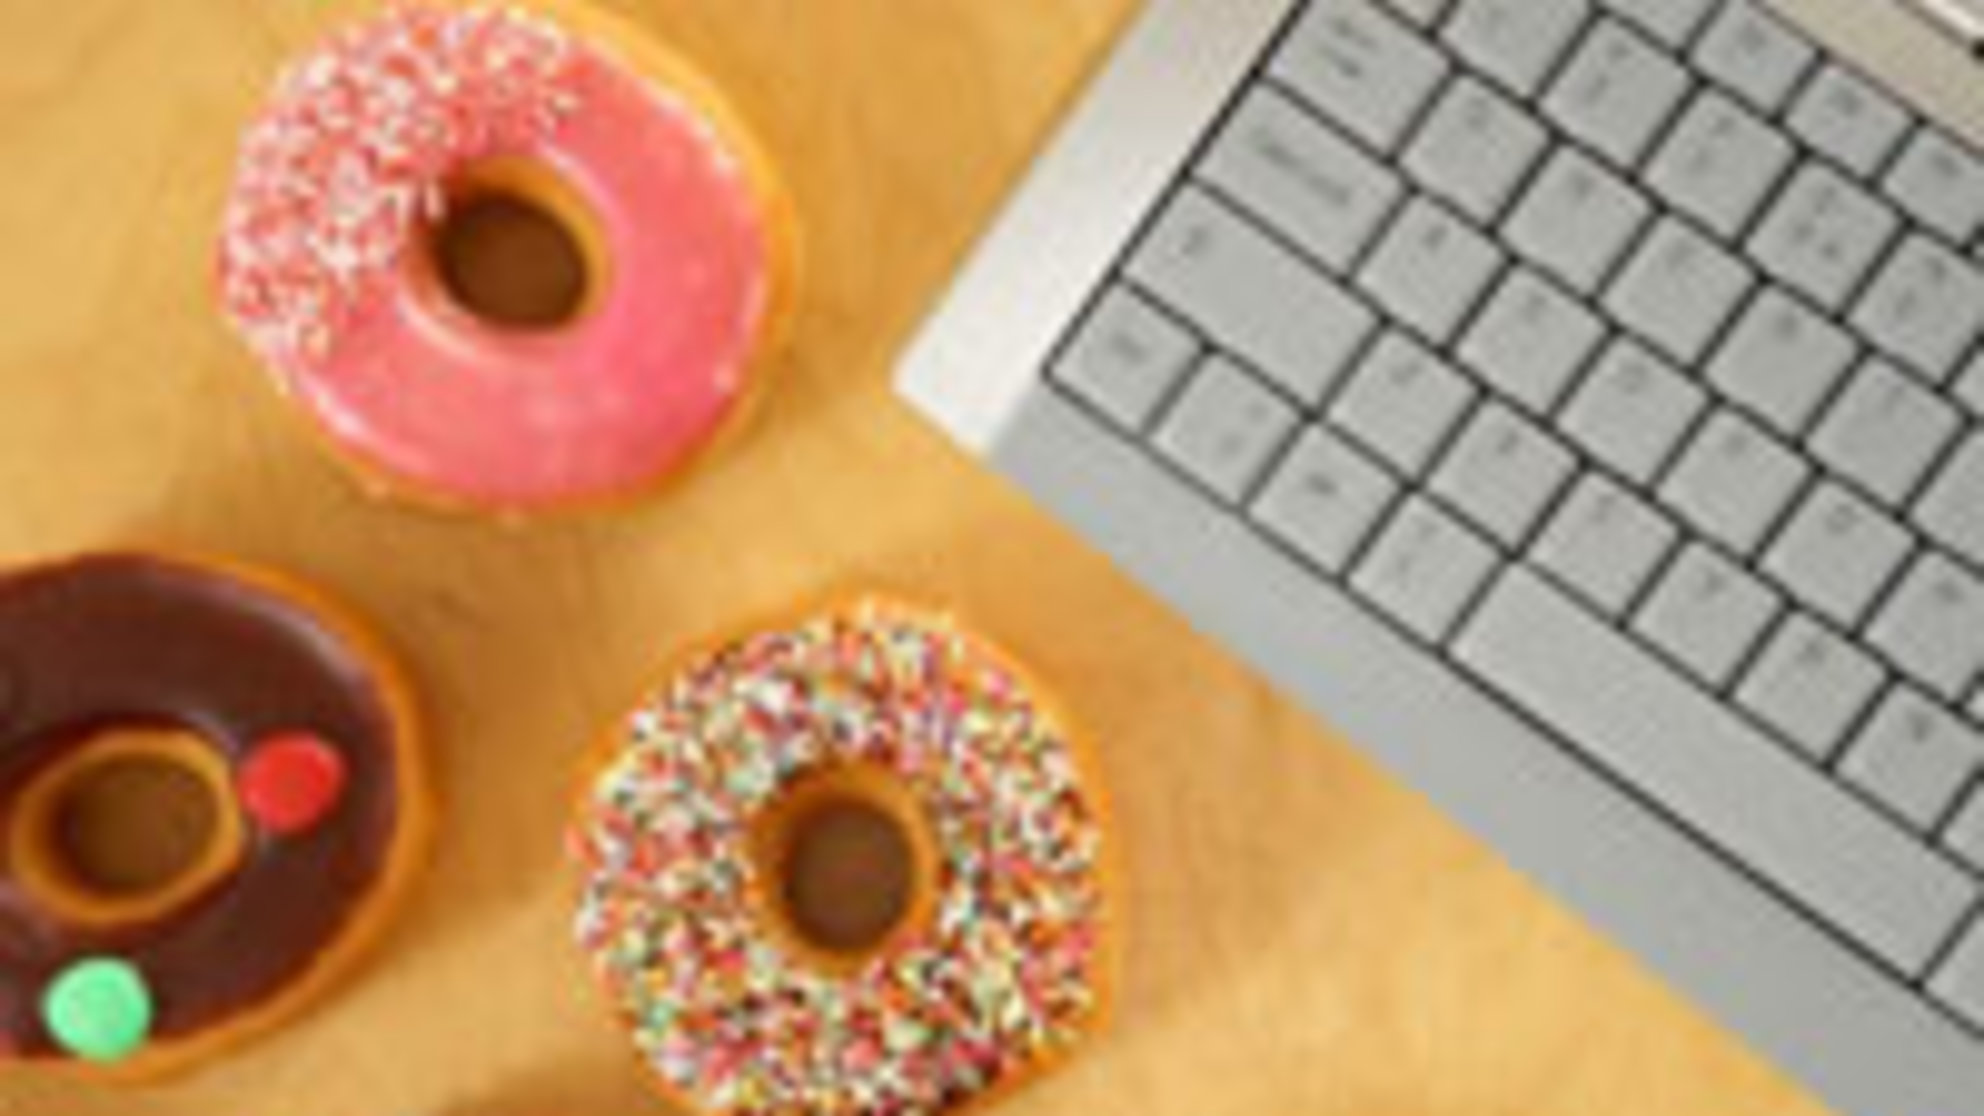 5 Tips to Keep Office Snacking From Derailing Your Diet